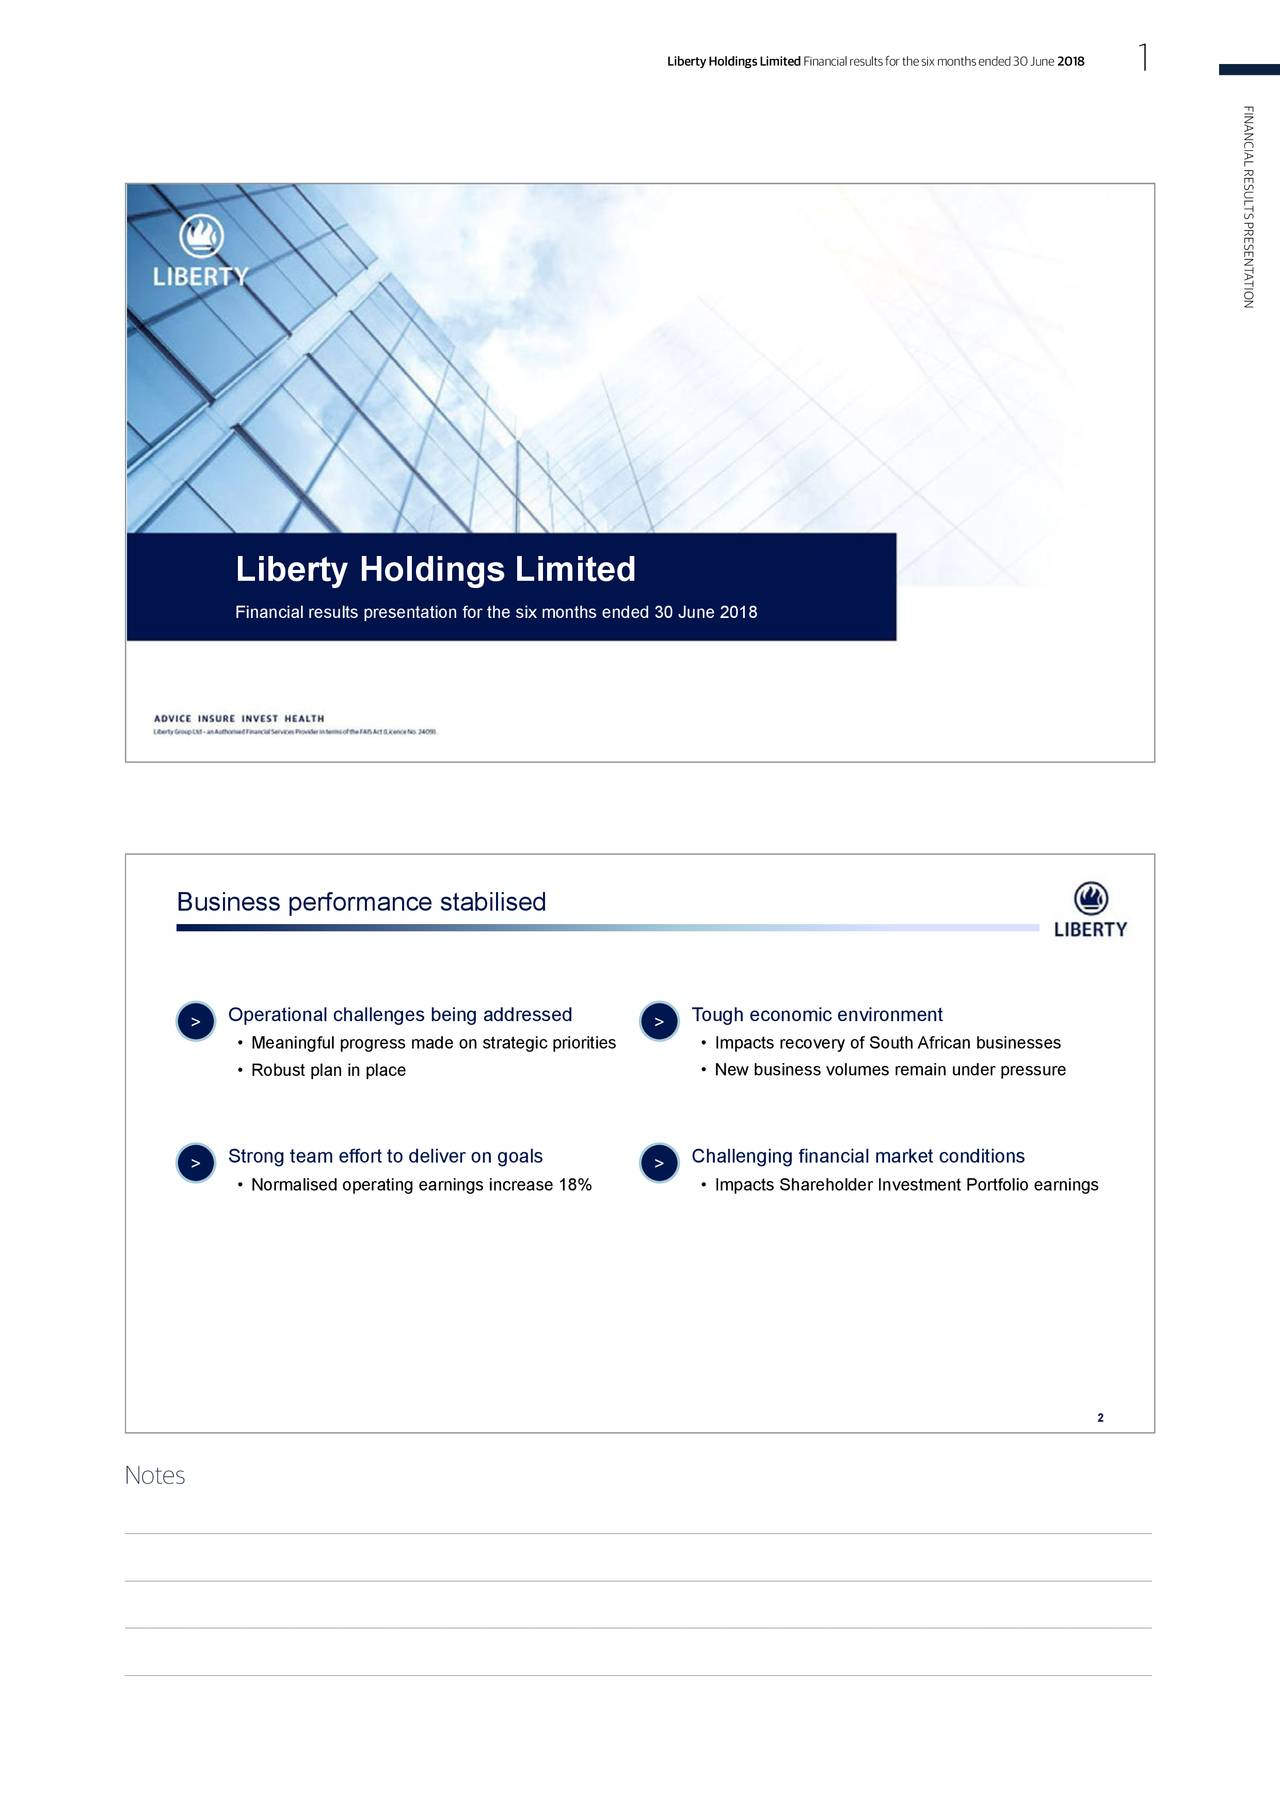 FINANCIALRESULTSPRESENTATION Liberty Holdings Limited Financial results presentation for the six months ended 30 June 2018 Business performance stabilised > Operational challenges being addressed > Tough economic environment • Meaningful progress made on strategic priorities • Impacts recovery of South African businesses • Robust plan in place • New business volumes remain under pressure > Strong team effort to deliver on goals > Challenging financial market conditions • Normalised operating earnings increase 18% • Impacts Shareholder Investment Portfolio earnings 2 Notes ▯ ▯ ▯ ▯